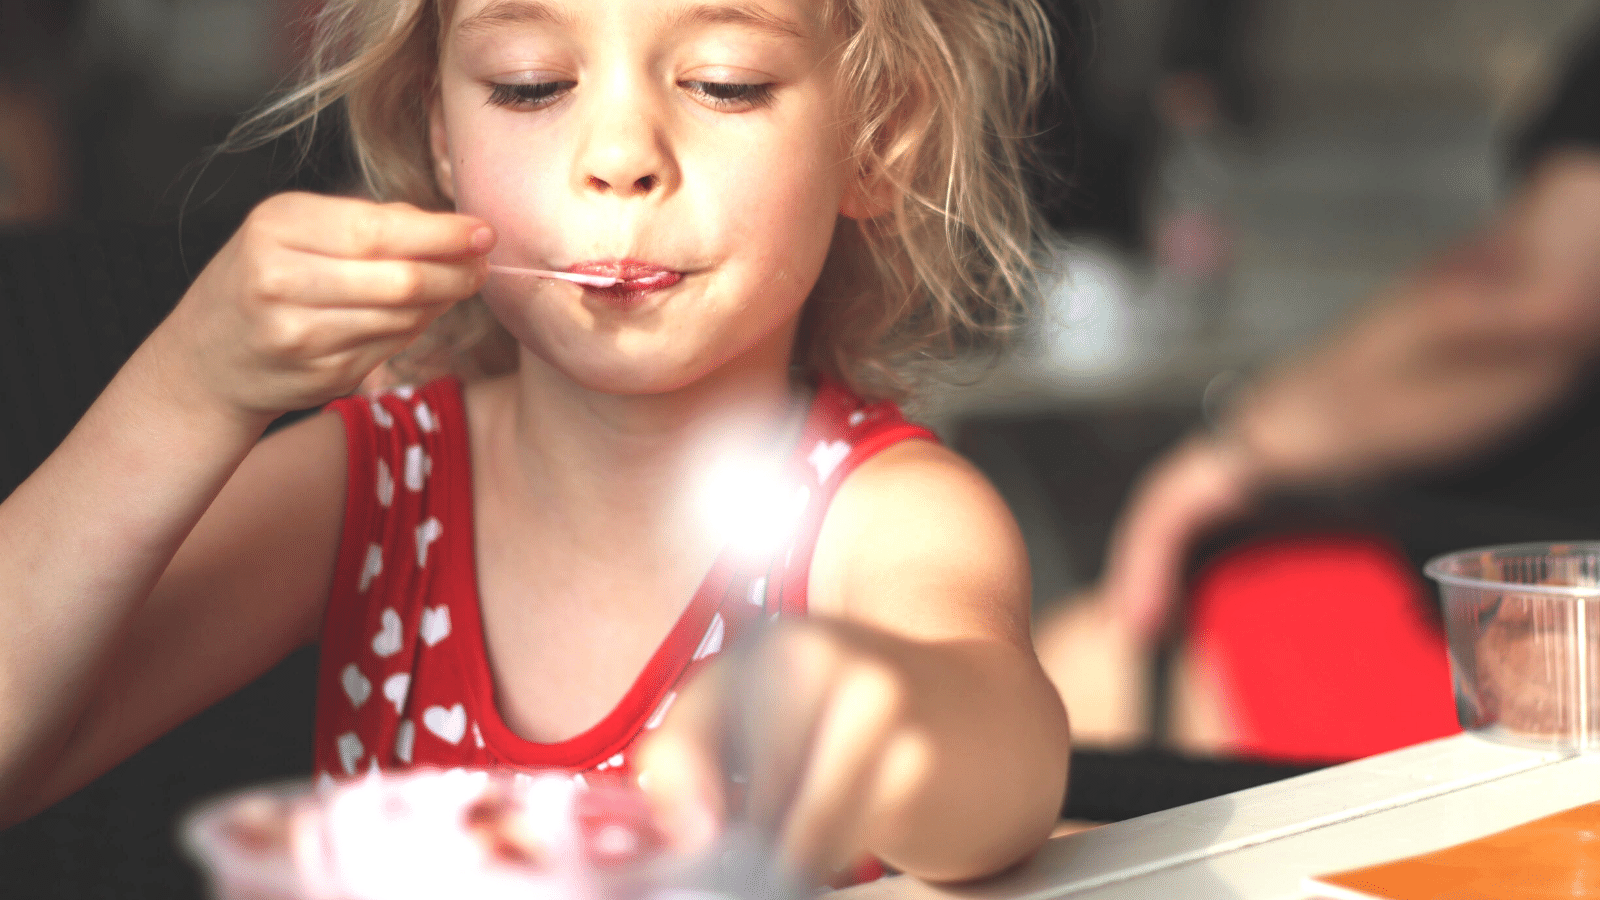 Parenting: Dealing with a Fussy Eater